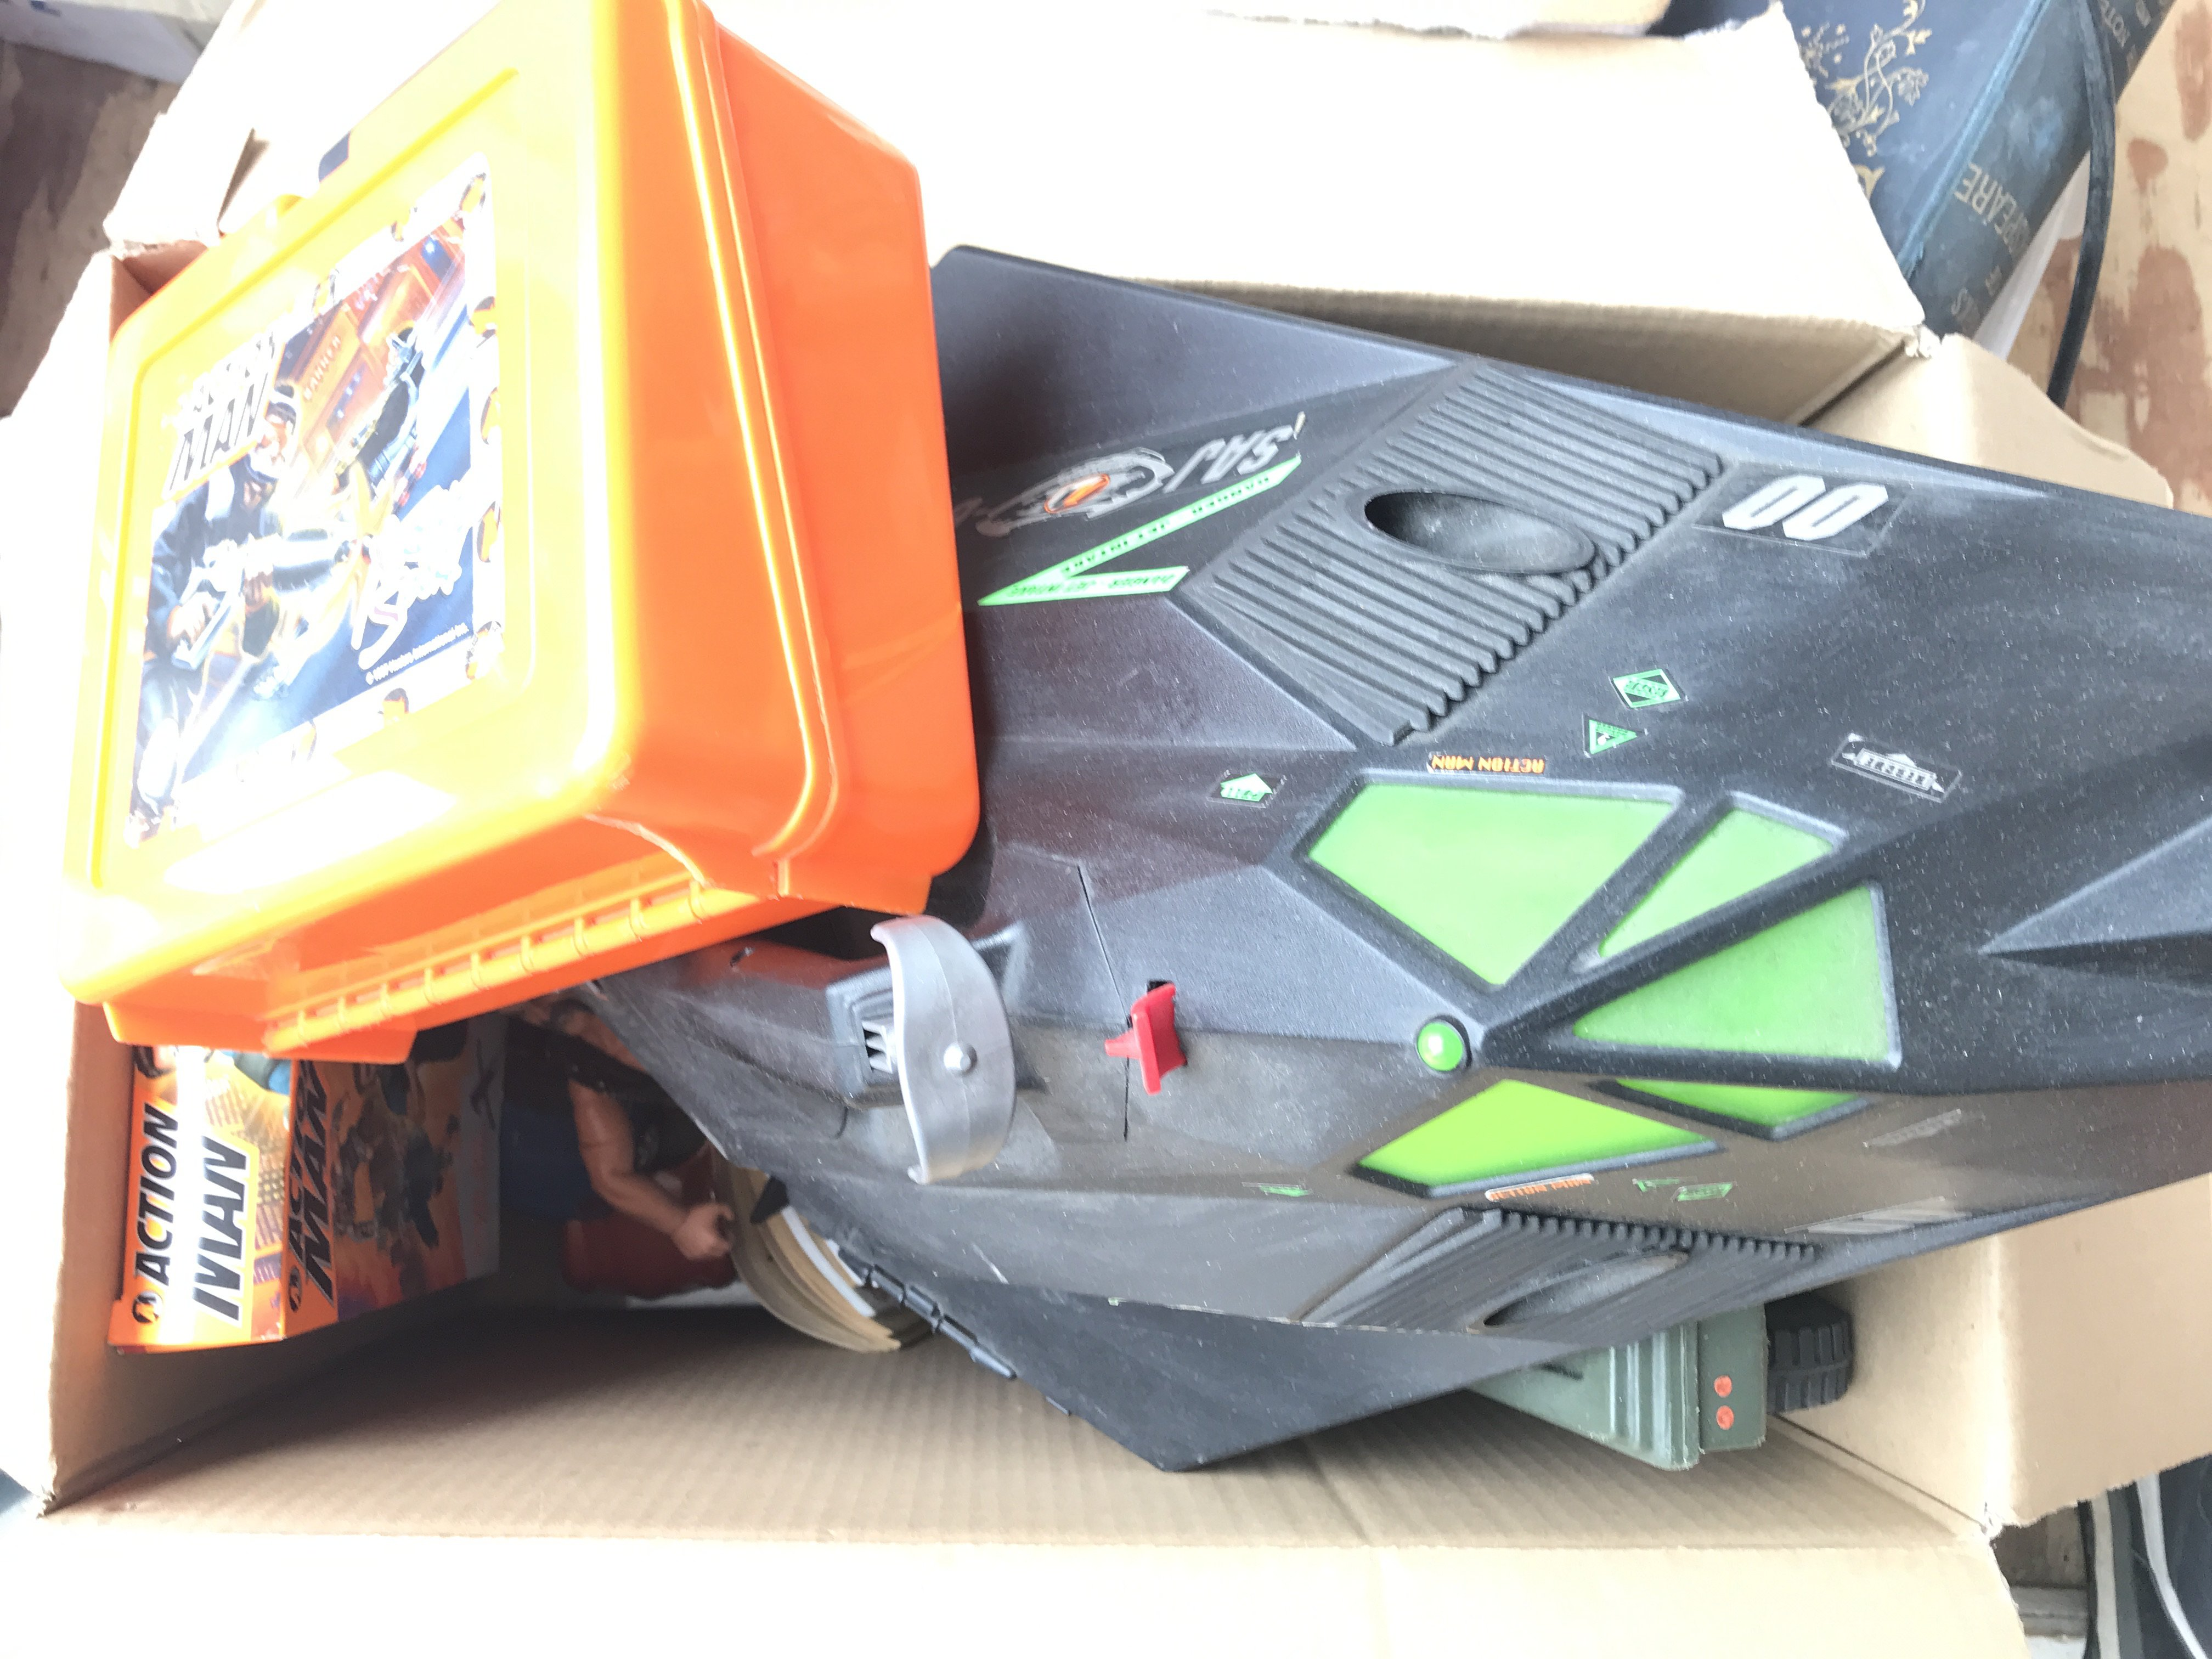 2 X Boxes containing a Collection of Modern Action - Image 6 of 6